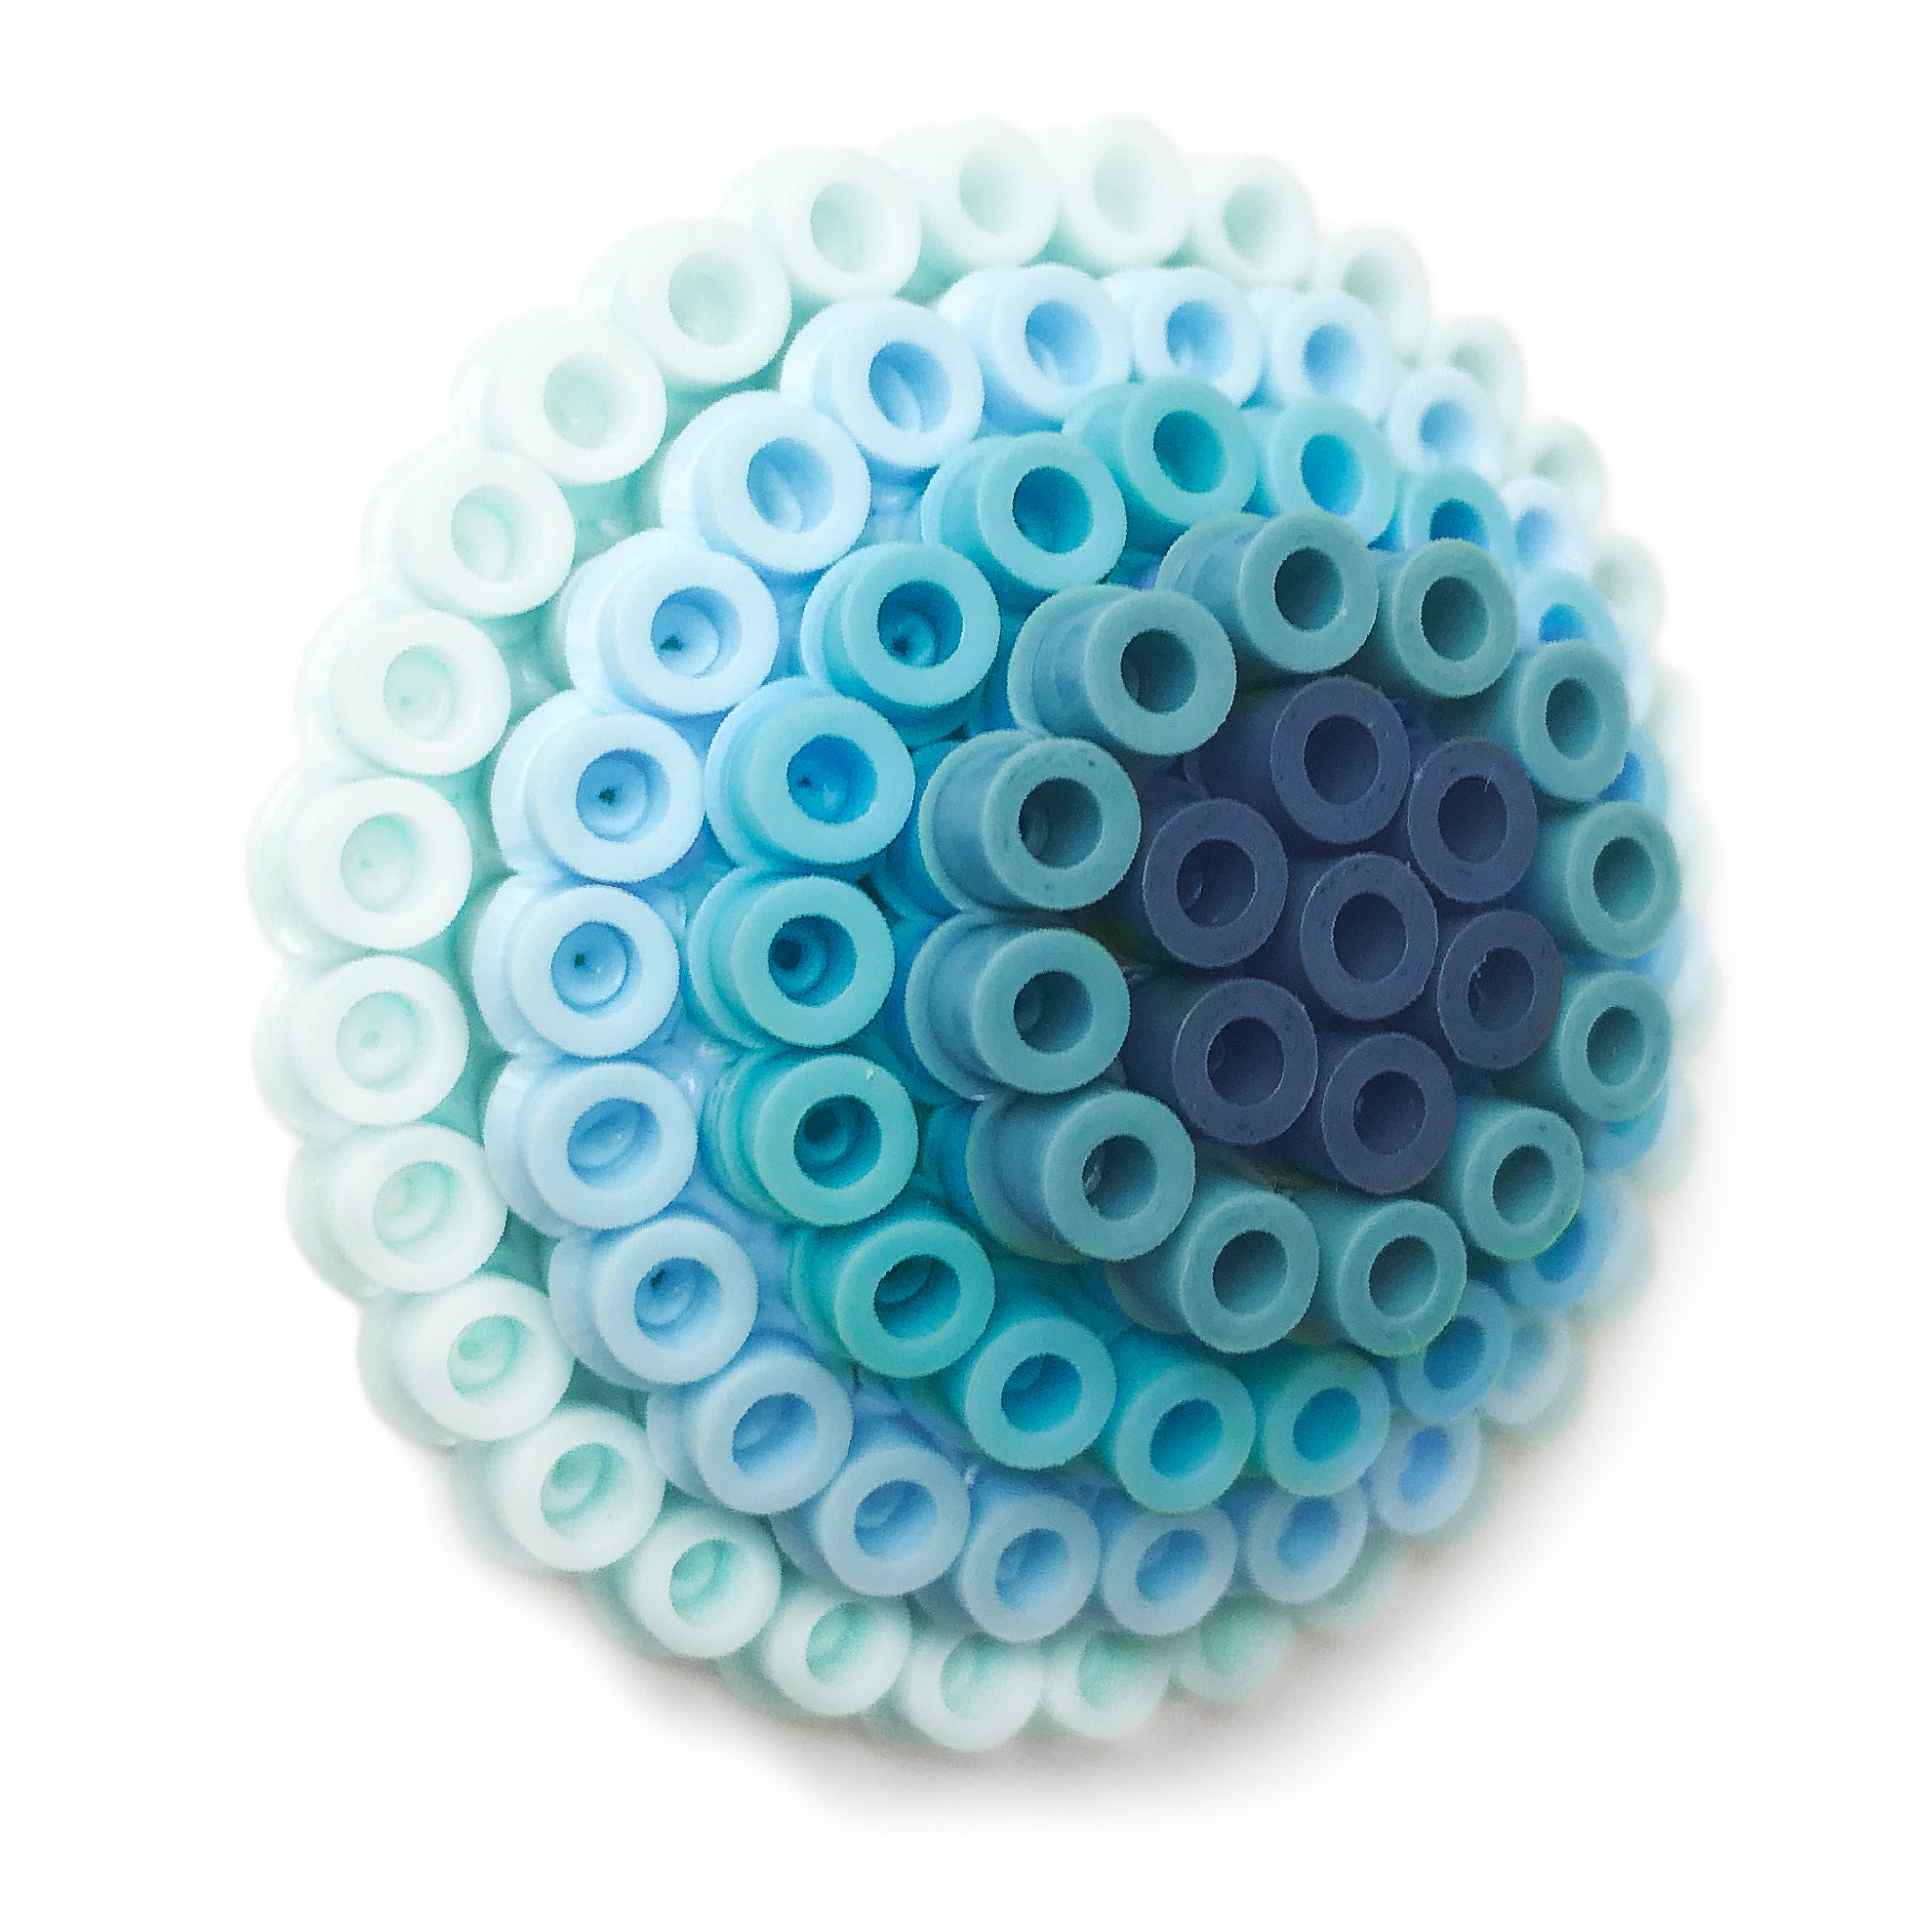 Blue Circles Statement Brooch - in shades of blue.